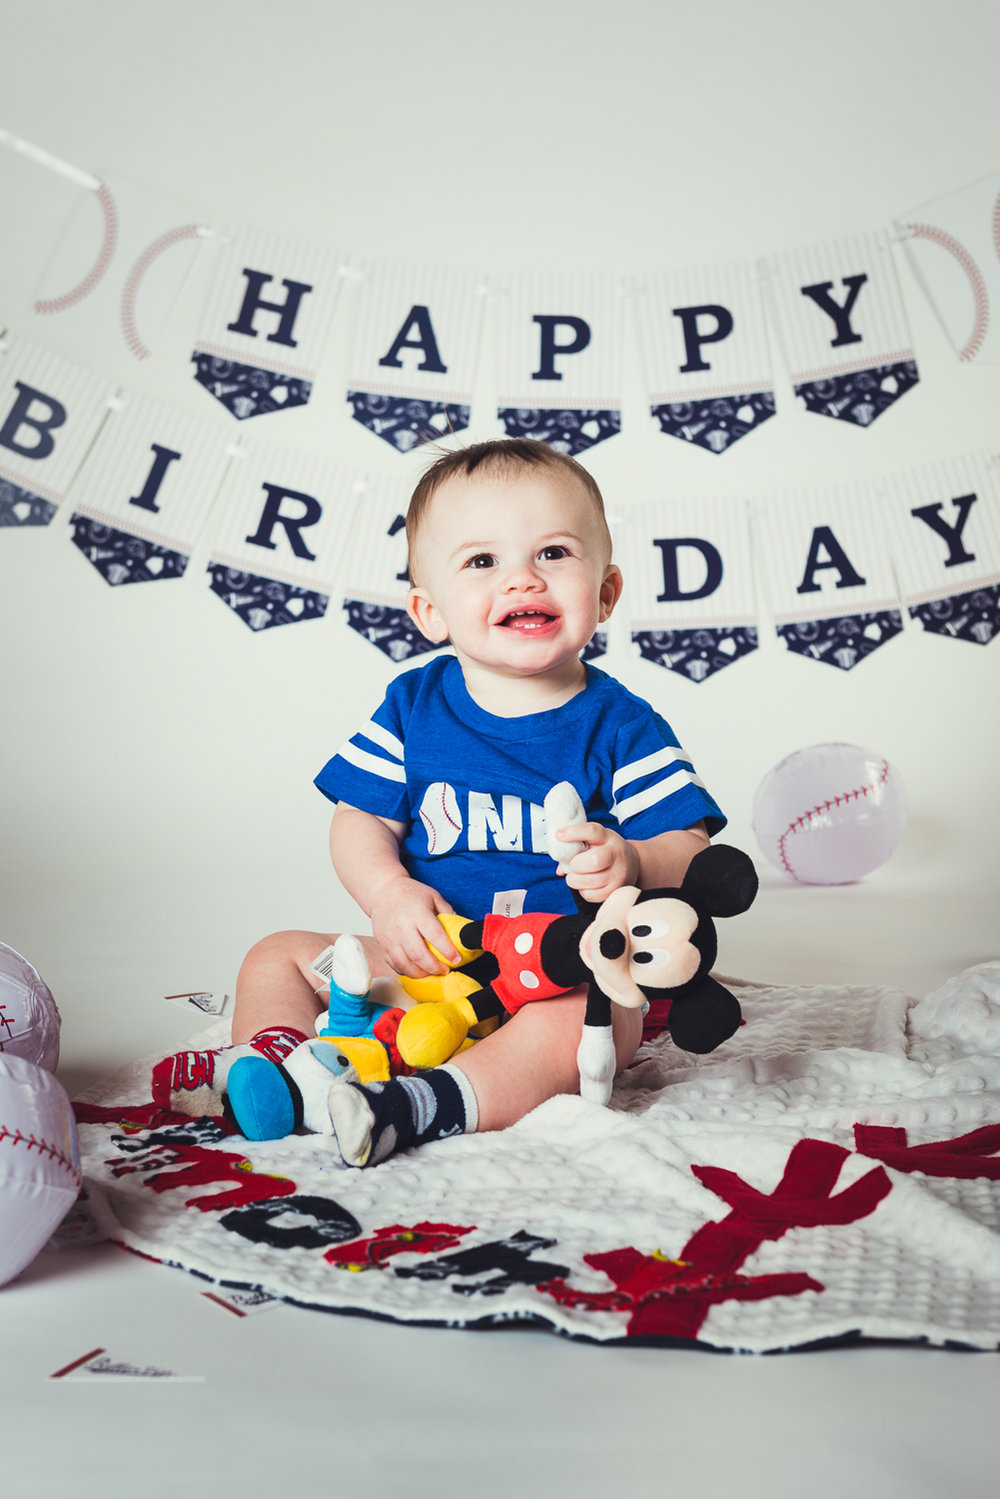 20171217 - Timmys First Bday Portraits LR-5.jpg